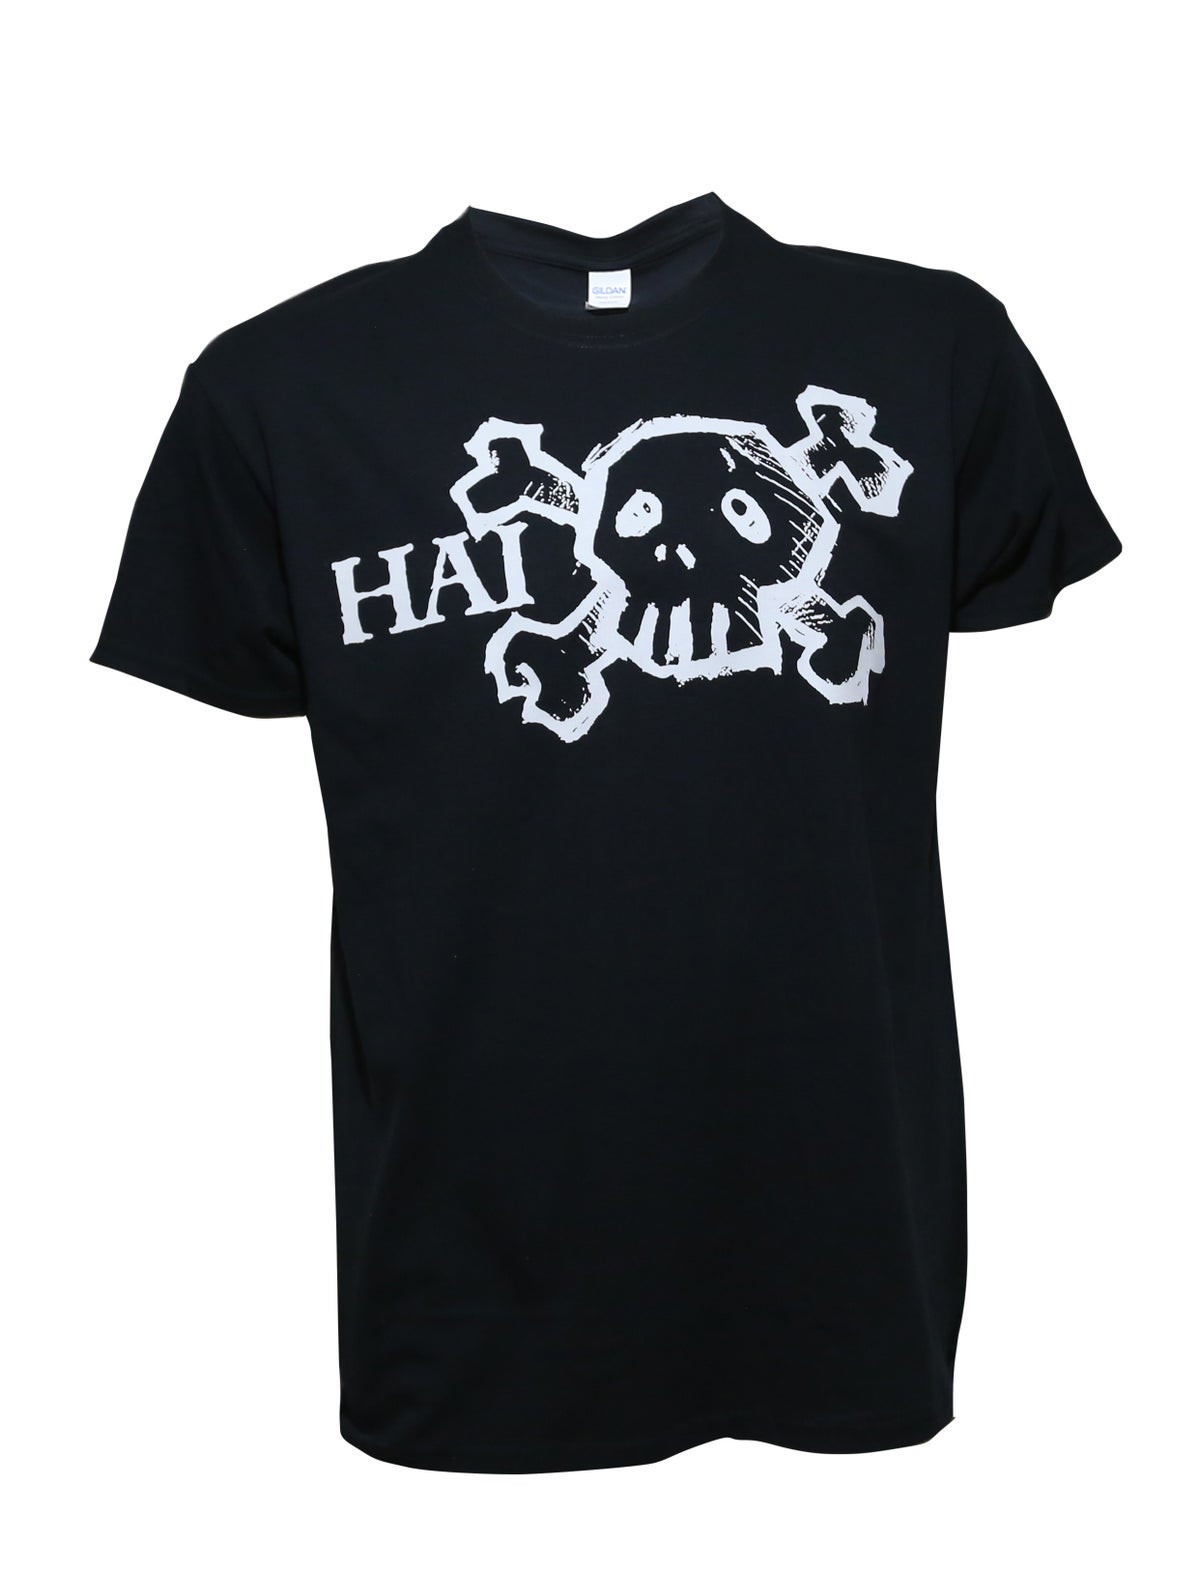 Image of HAI Forever Shirt - Limited Edition